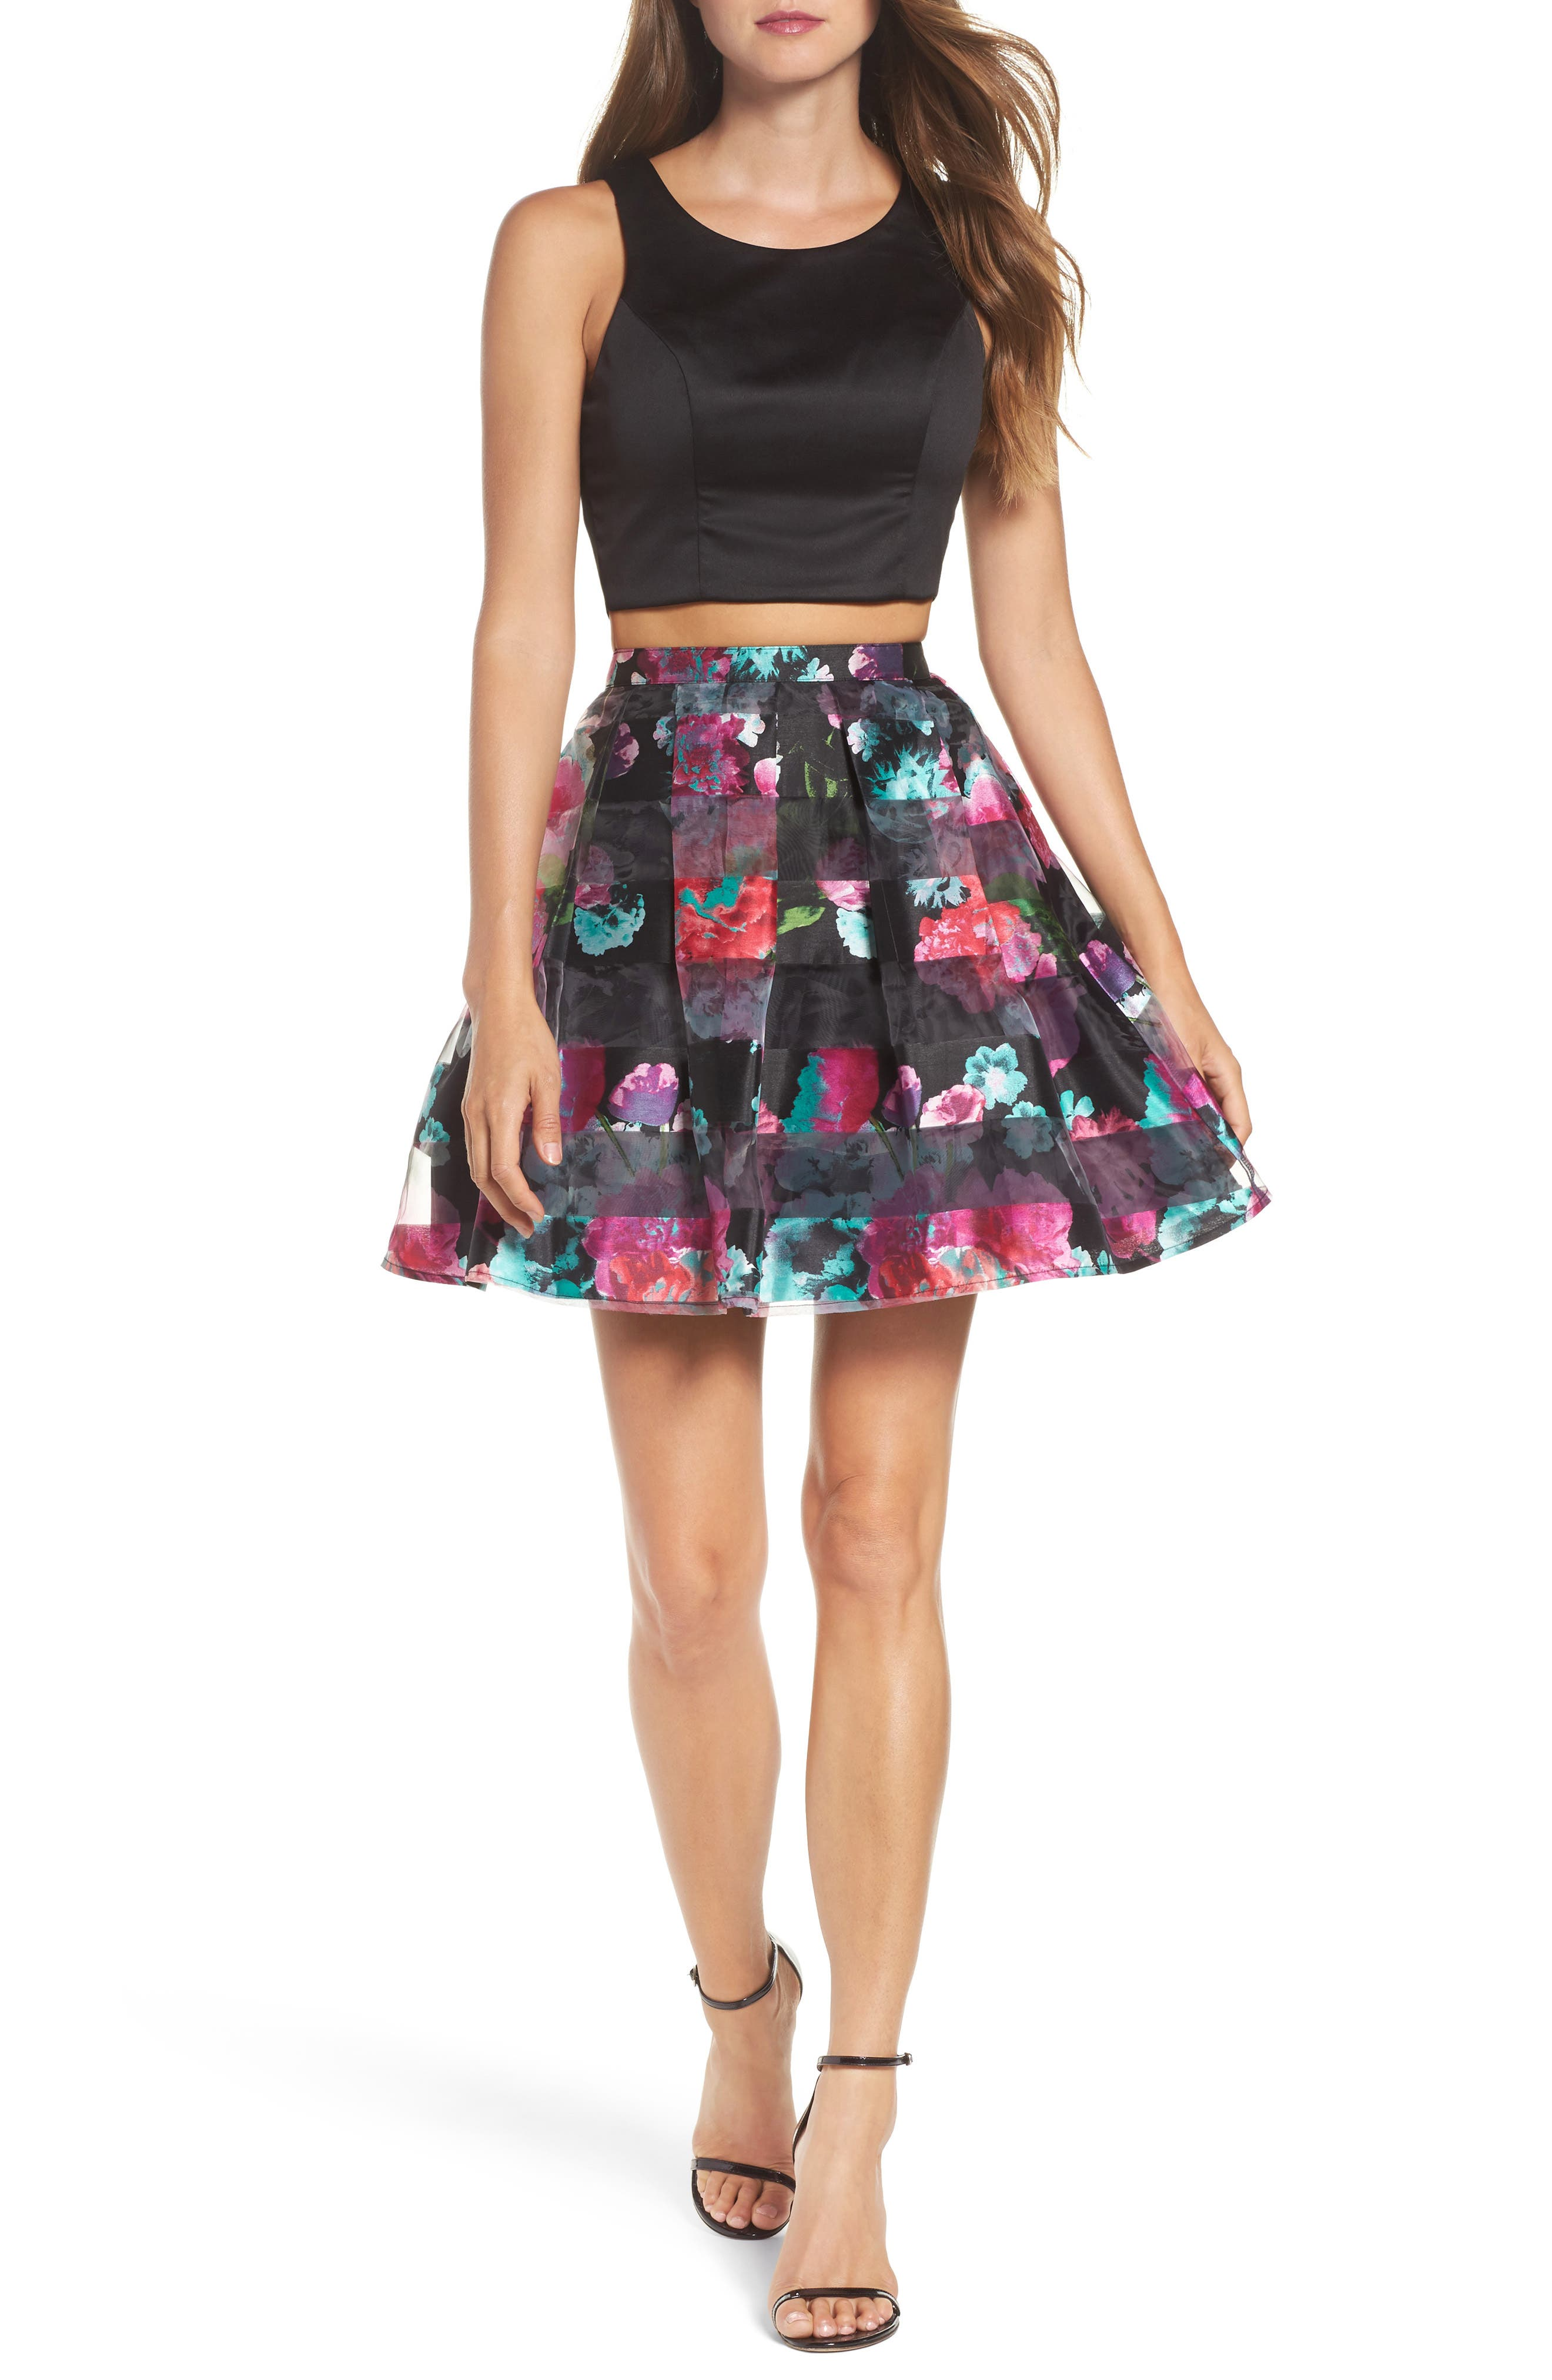 Alternate Image 1 Selected - Sequin Hearts Printed Shadow Skirt Two-Piece Fit & Flare Dress